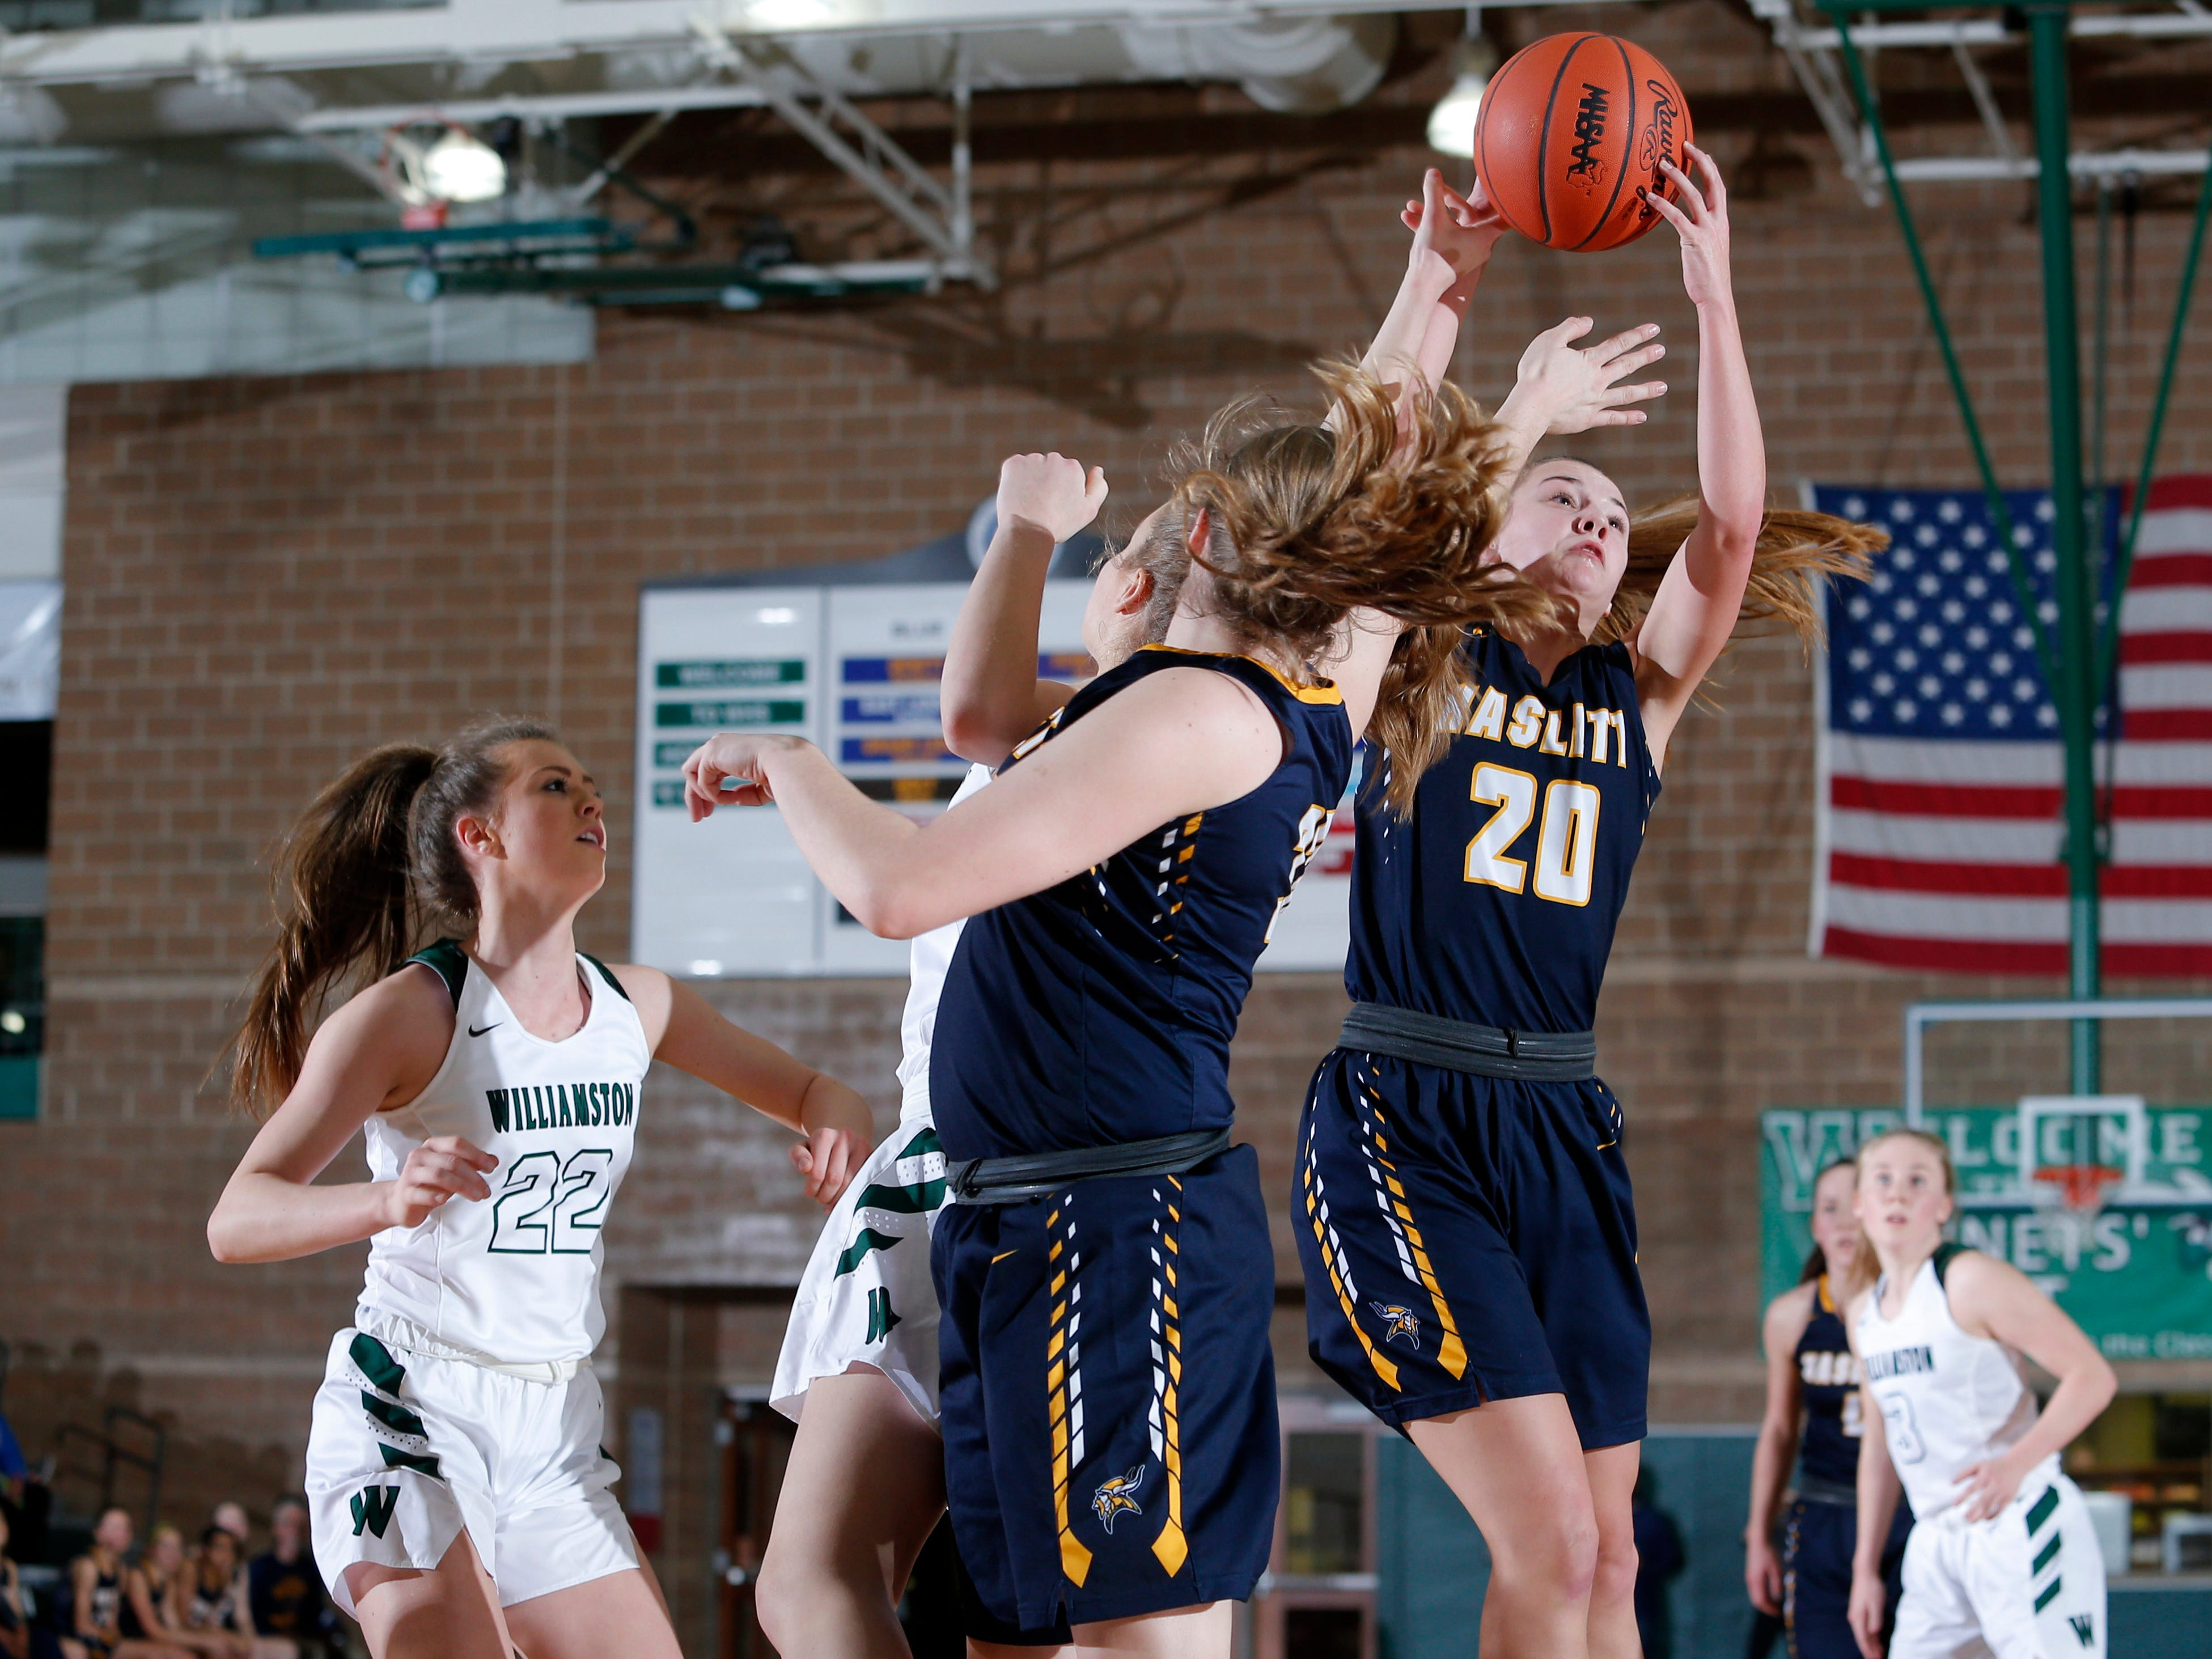 Haslett's Skyla Nosek, right, grabs a rebound against Williamston, Friday, Jan. 11, 2019, in Williamston, Mich.